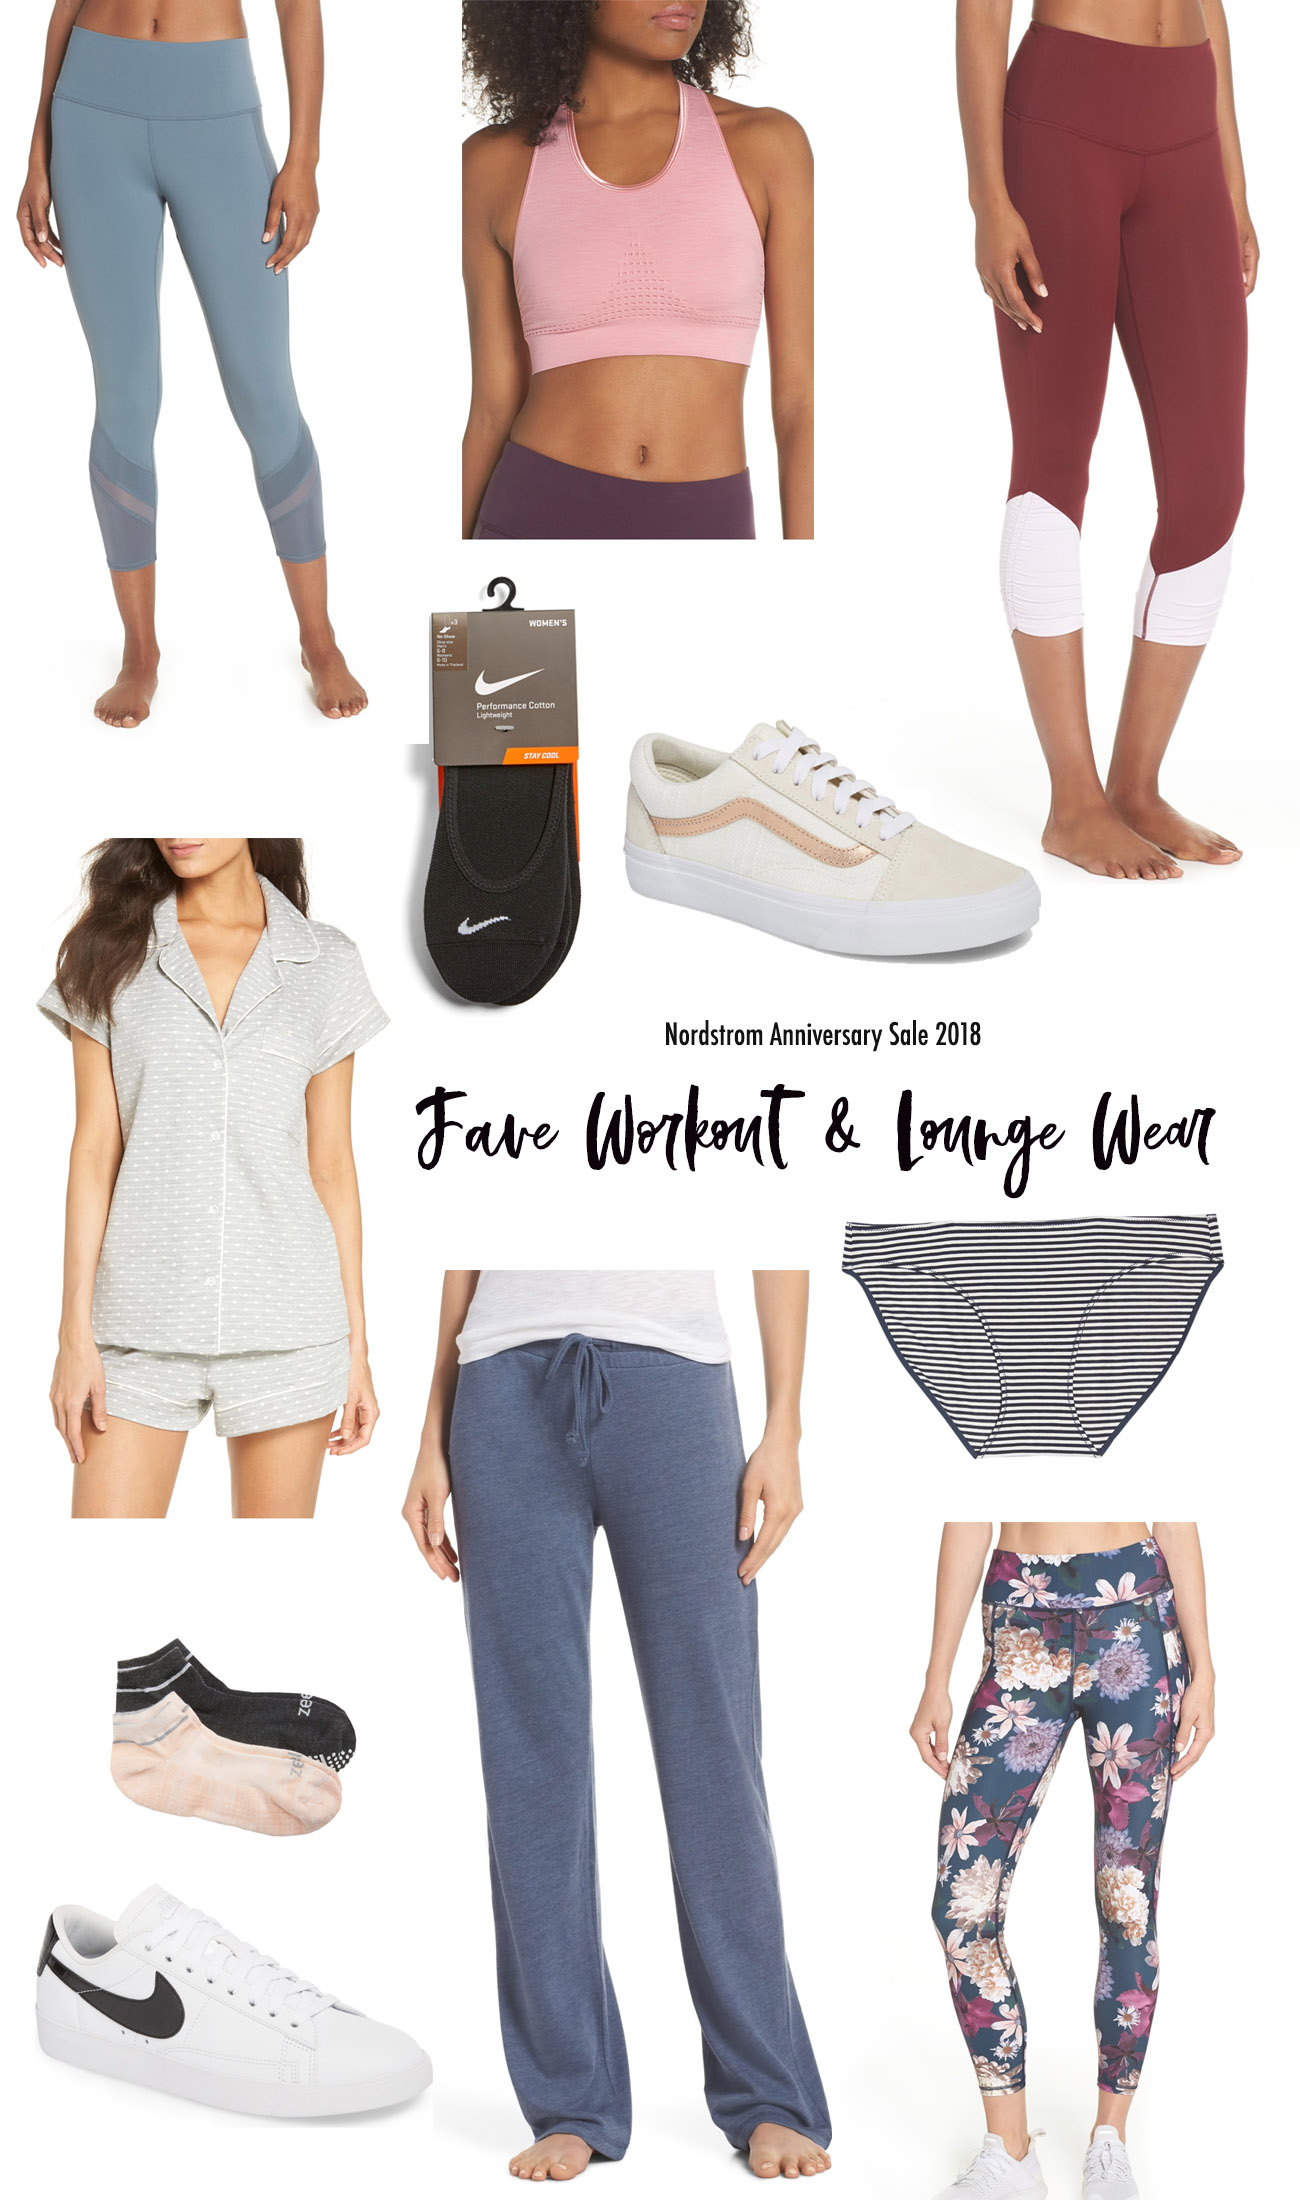 nordstrom sale 2018 fave workout and lounge picks